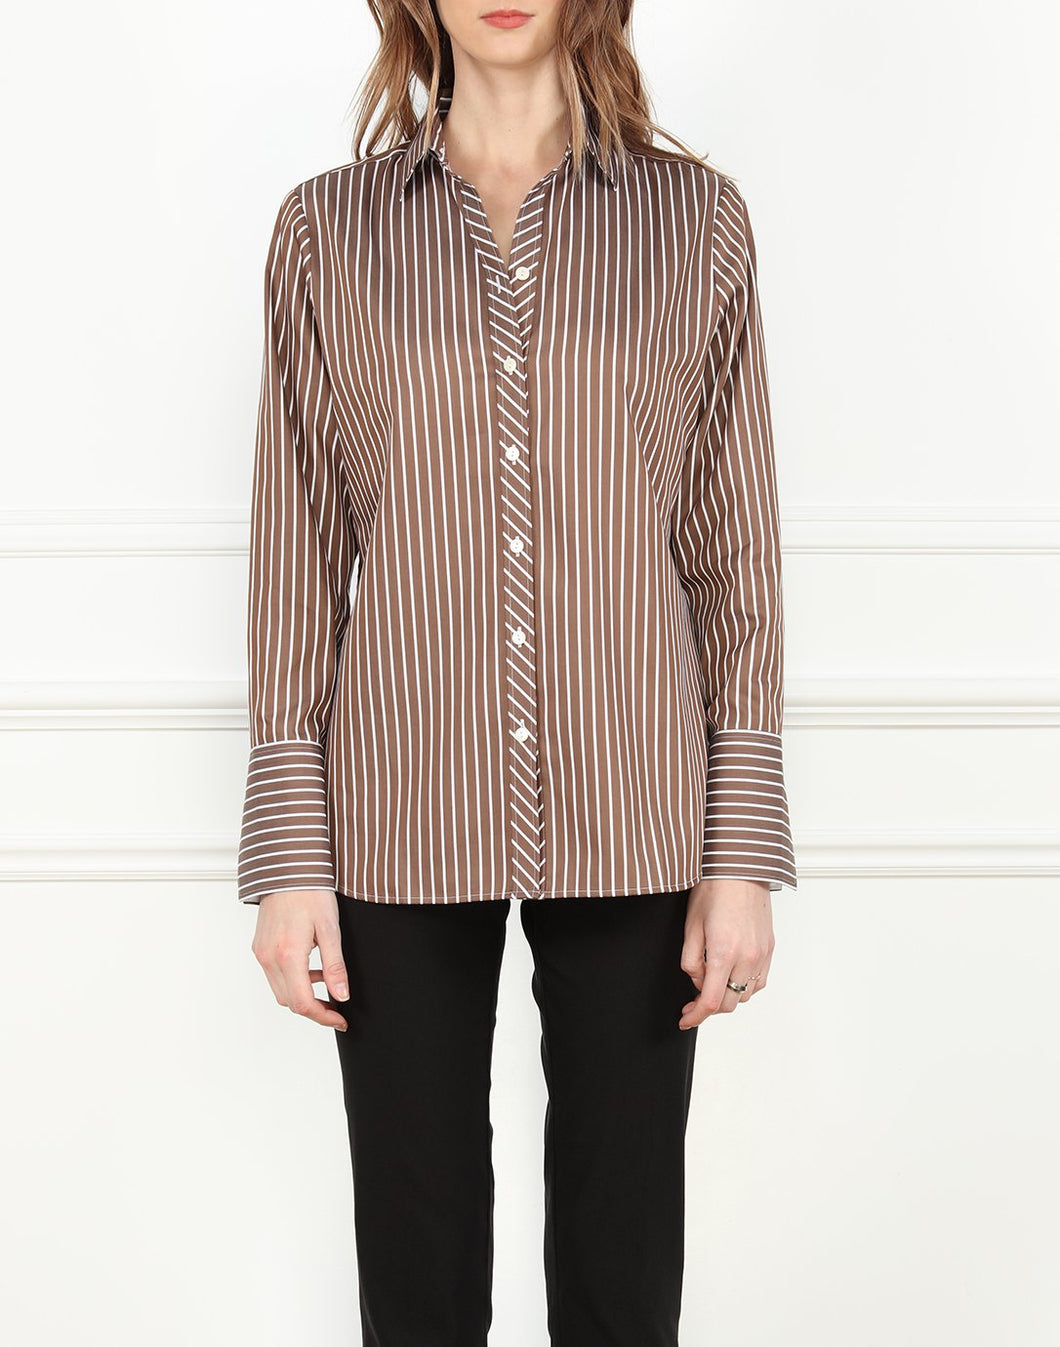 Meghan Relaxed Fit Shirt in Brown and White Stripe